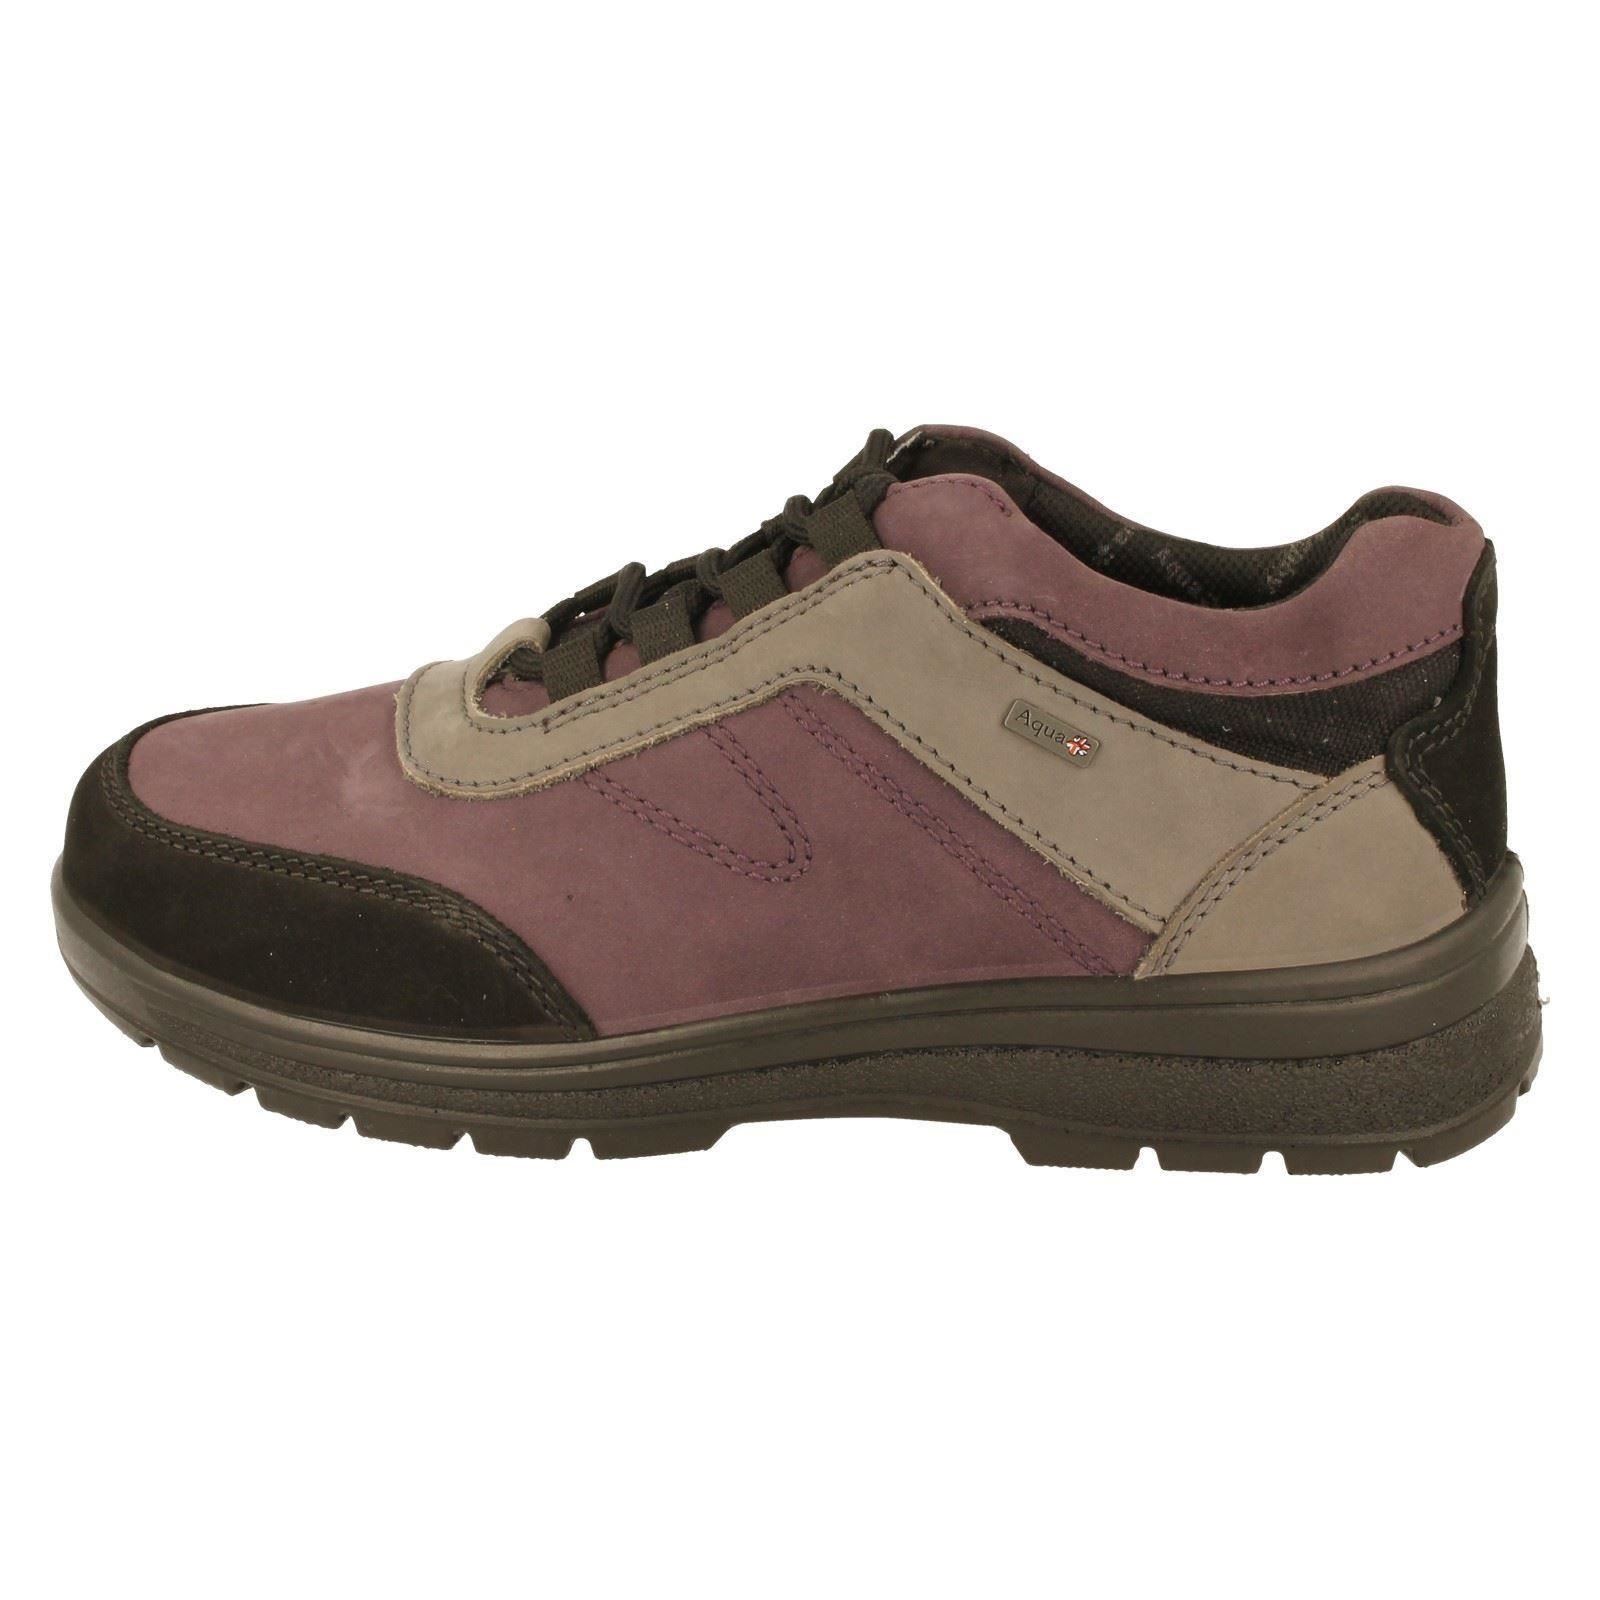 Wp The Padders Ladies Chaussures Dual Style Fitting Walking nxfwP6Aw